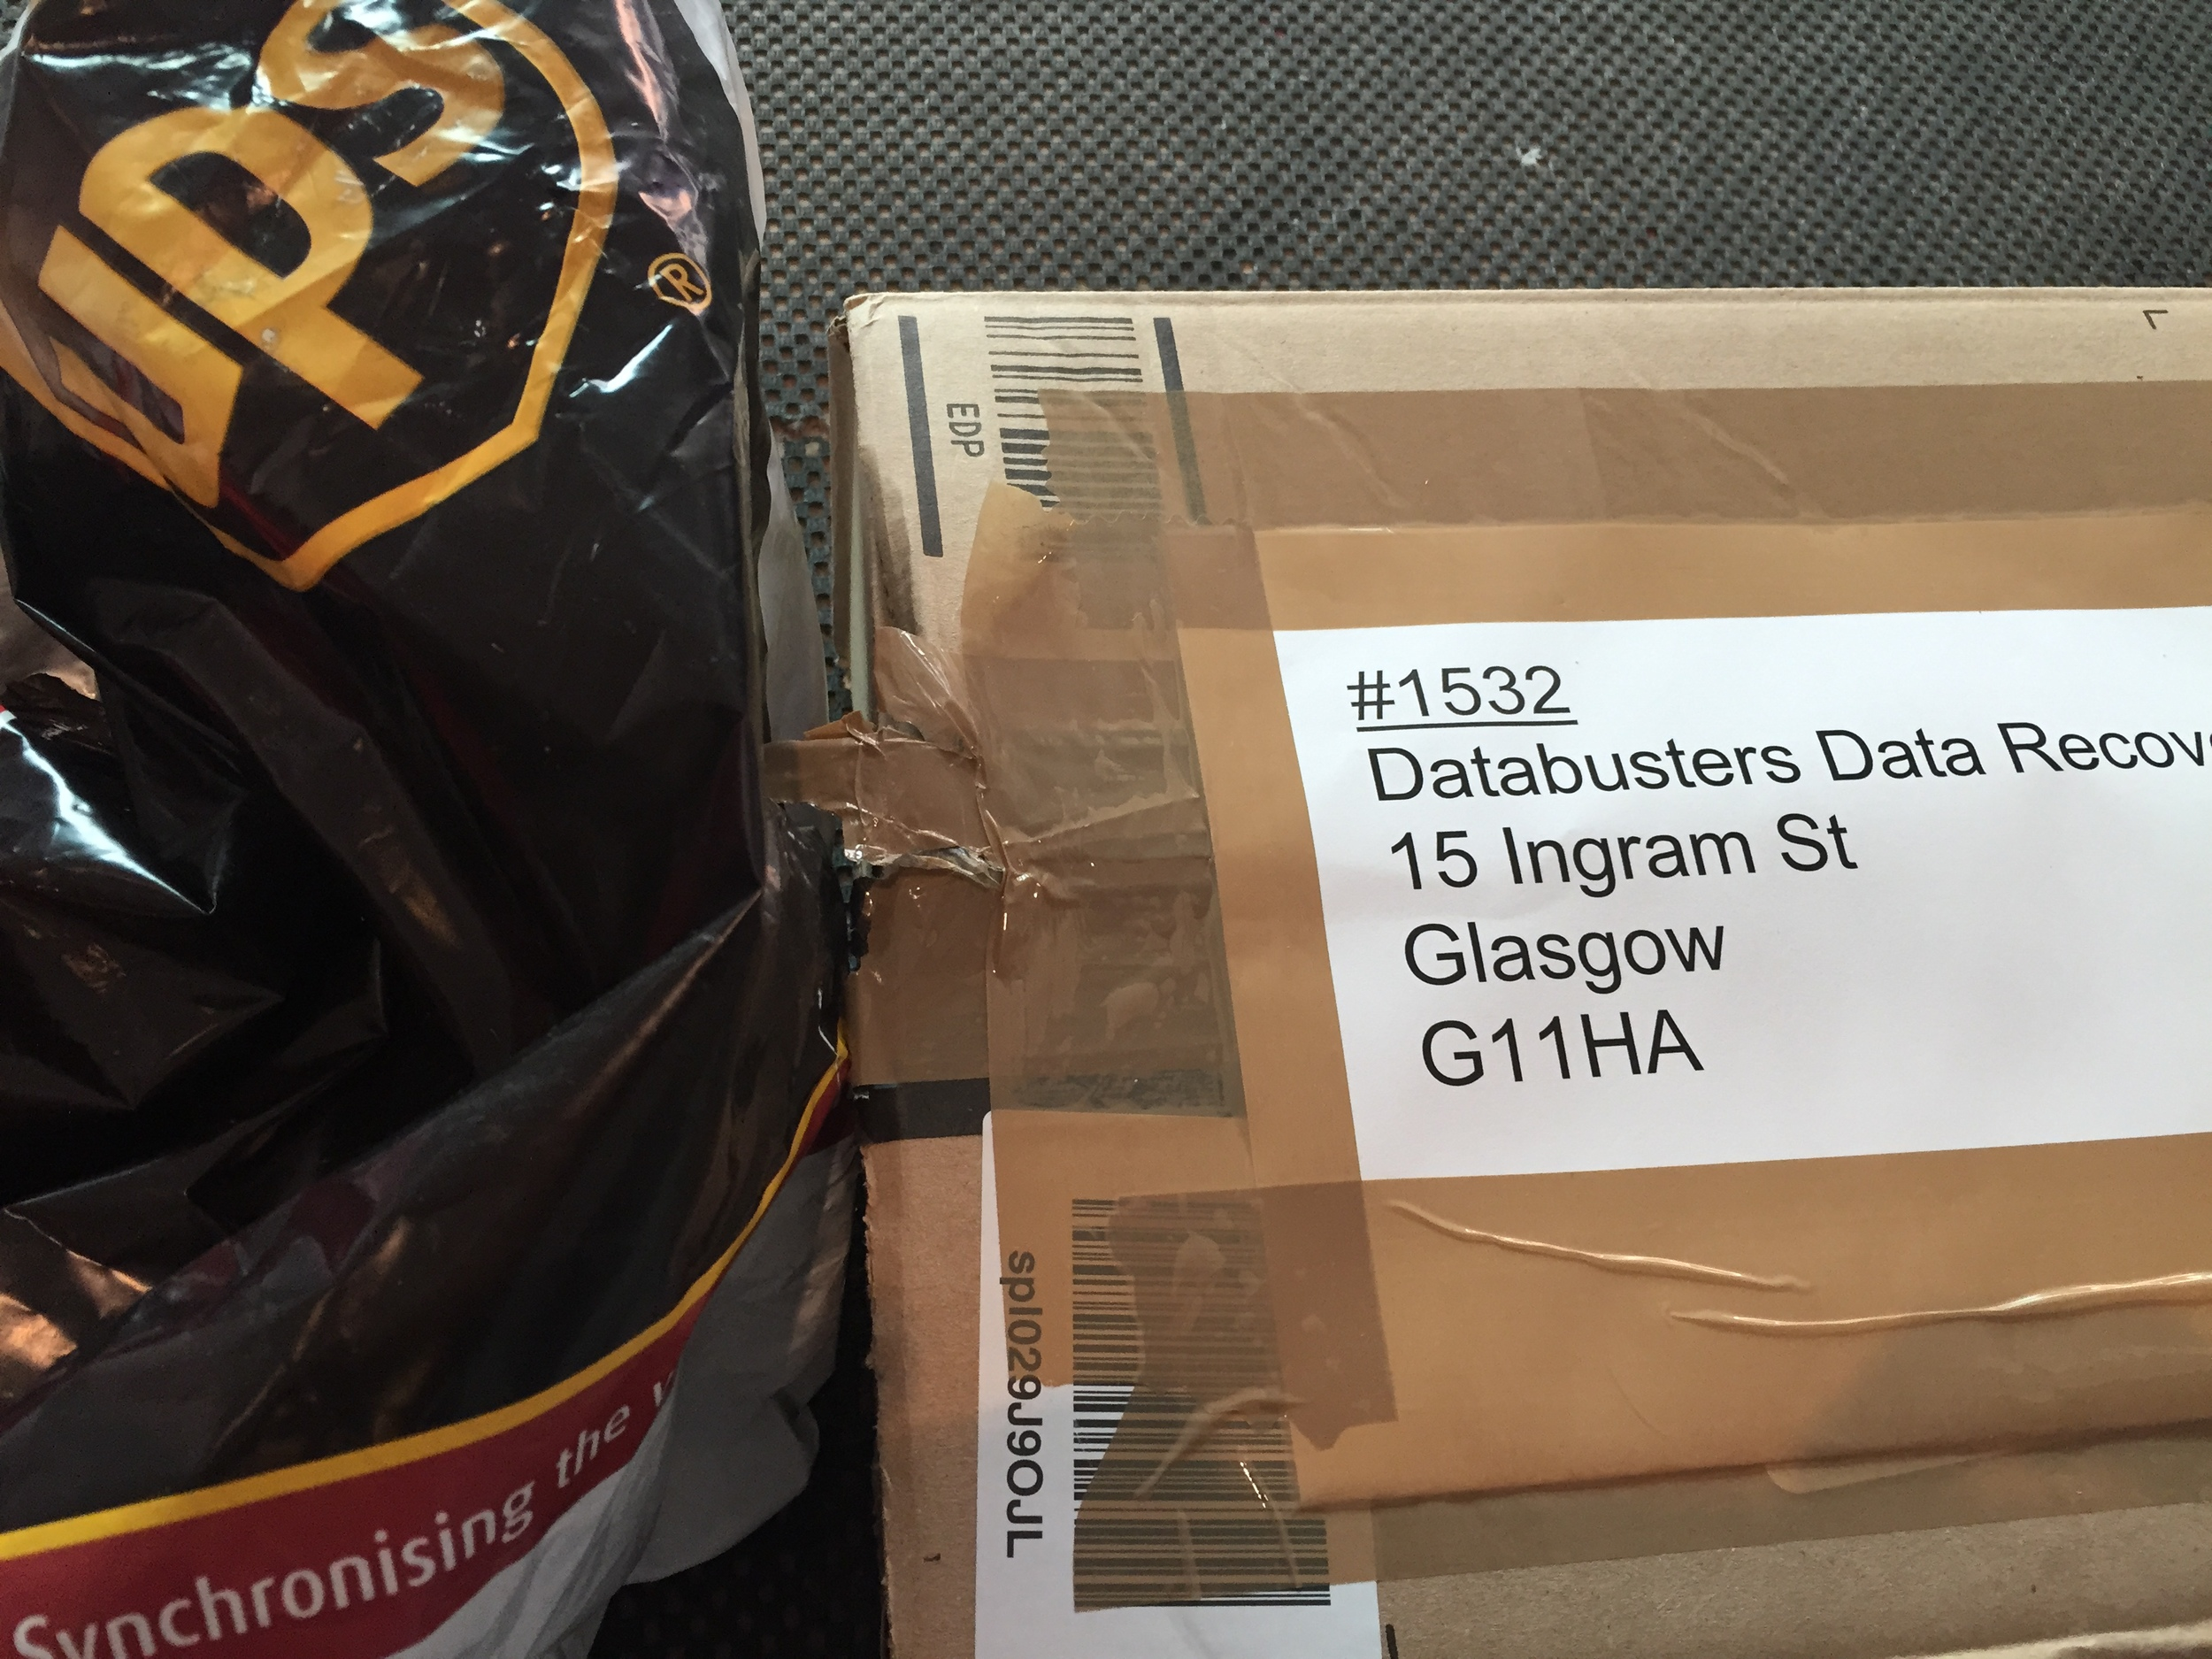 The bulk of drives I get sent are sent in from north of Scotland, England (some from Ireland) and abroad, I use UPS and DHL. The local ones I ask that they come and see me personally so we can look at a drive together. I prefer it that way.